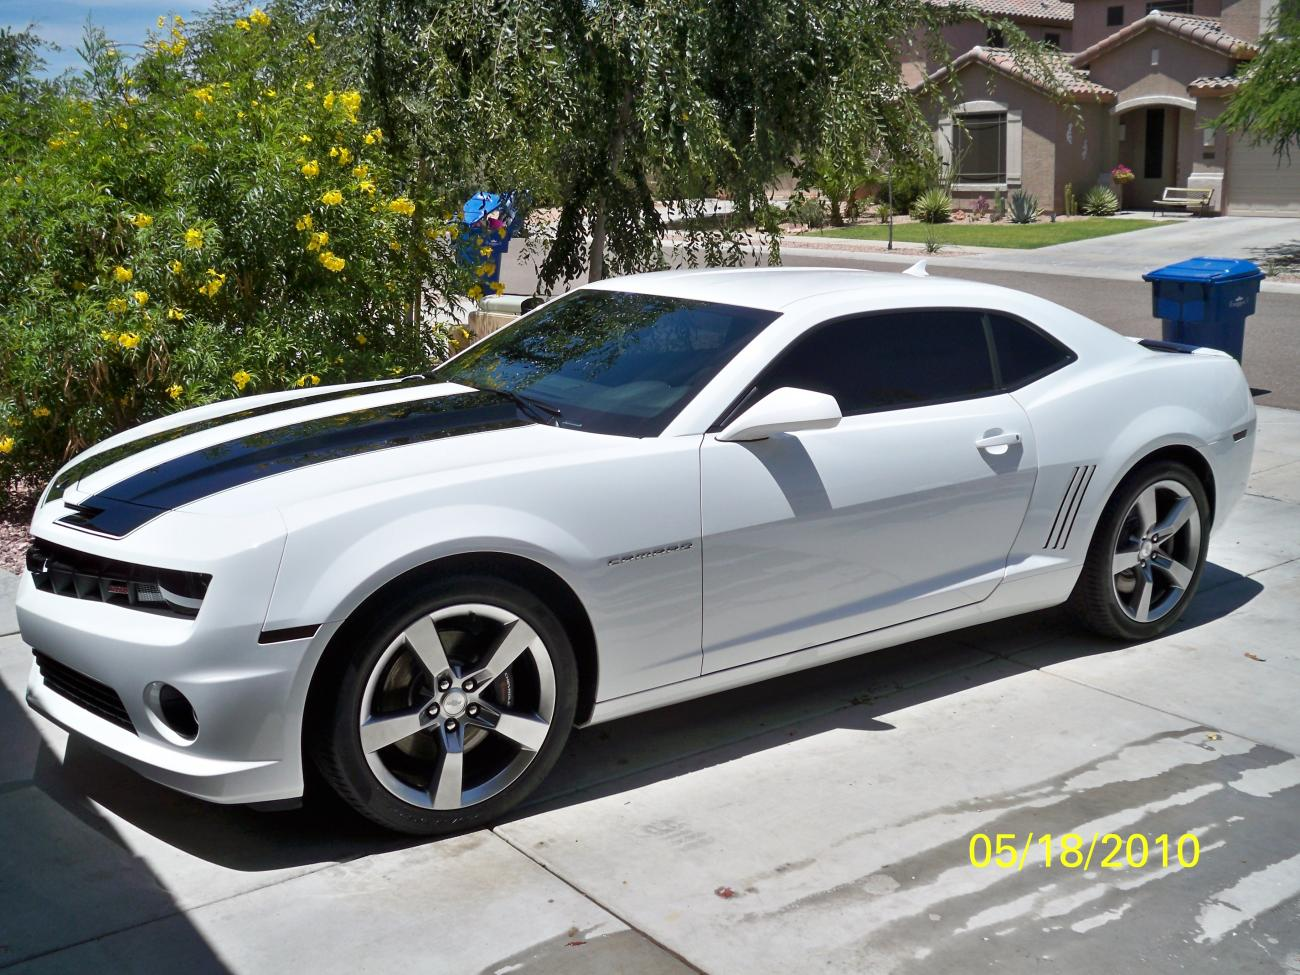 how much to have stripes painted on camaro5 chevy camaro forum camaro zl1 ss and v6 forums. Black Bedroom Furniture Sets. Home Design Ideas